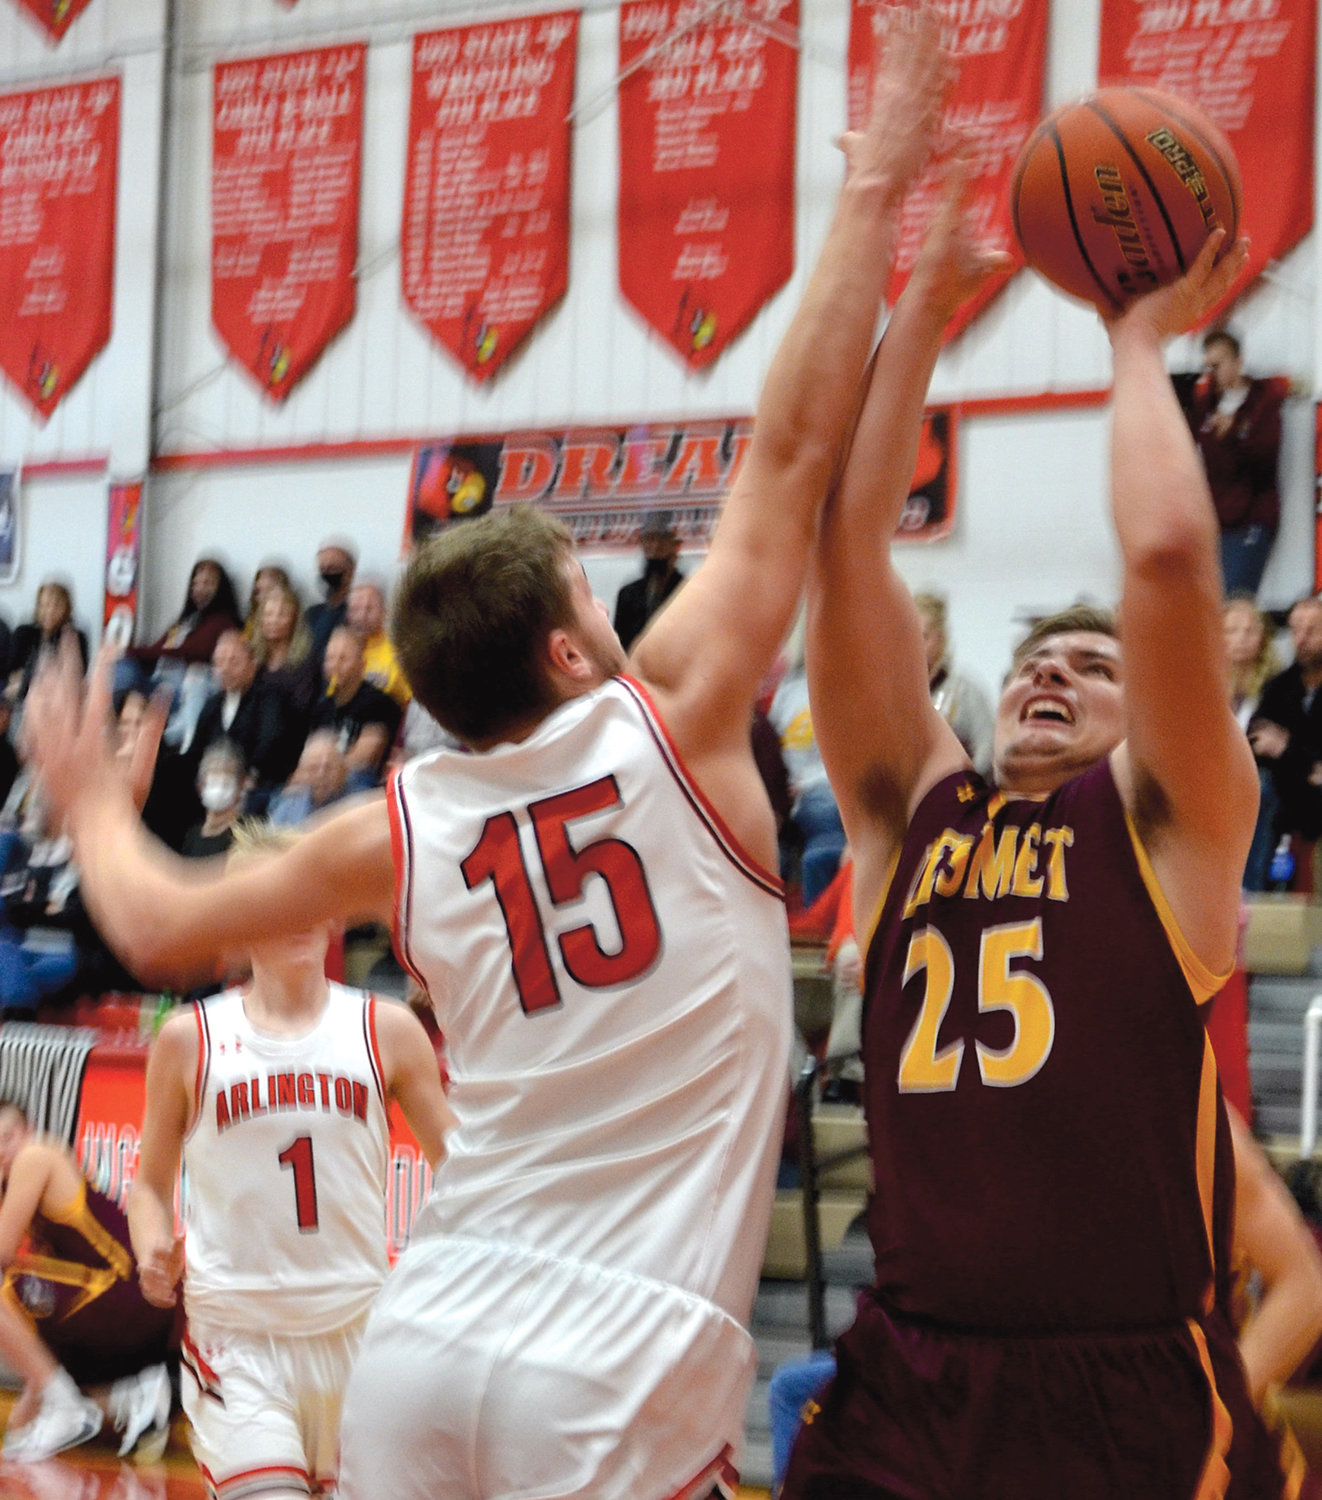 De Smet's Ethan McCune attempts a shot Jan. 8 past Arlington's Chris Wallace.